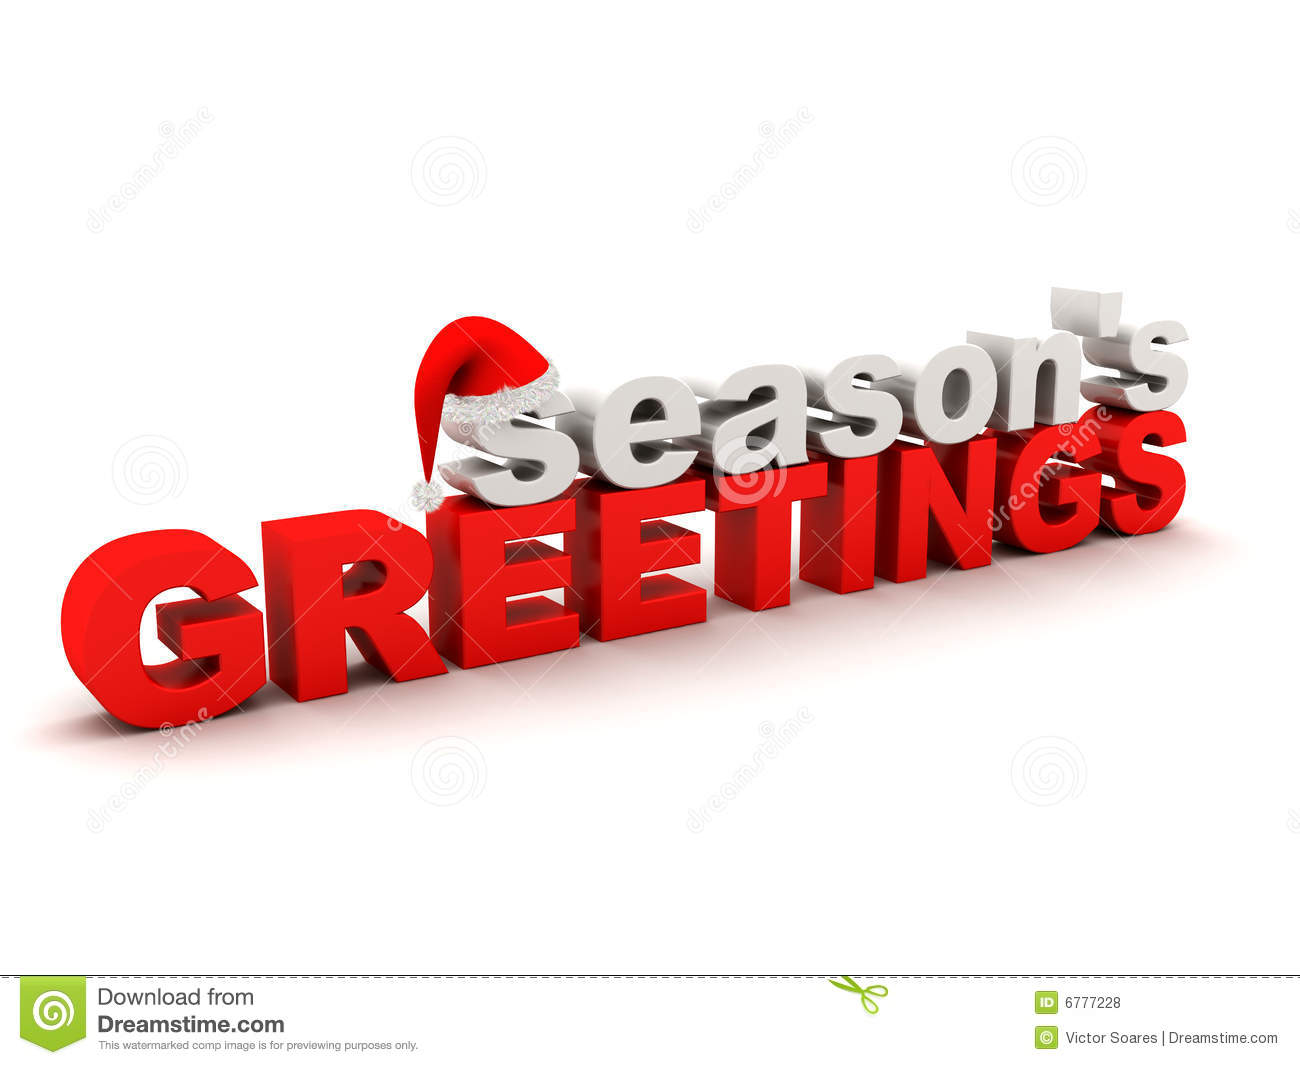 Seasons greetings text stock illustration illustration of holidays seasons greetings text m4hsunfo Choice Image